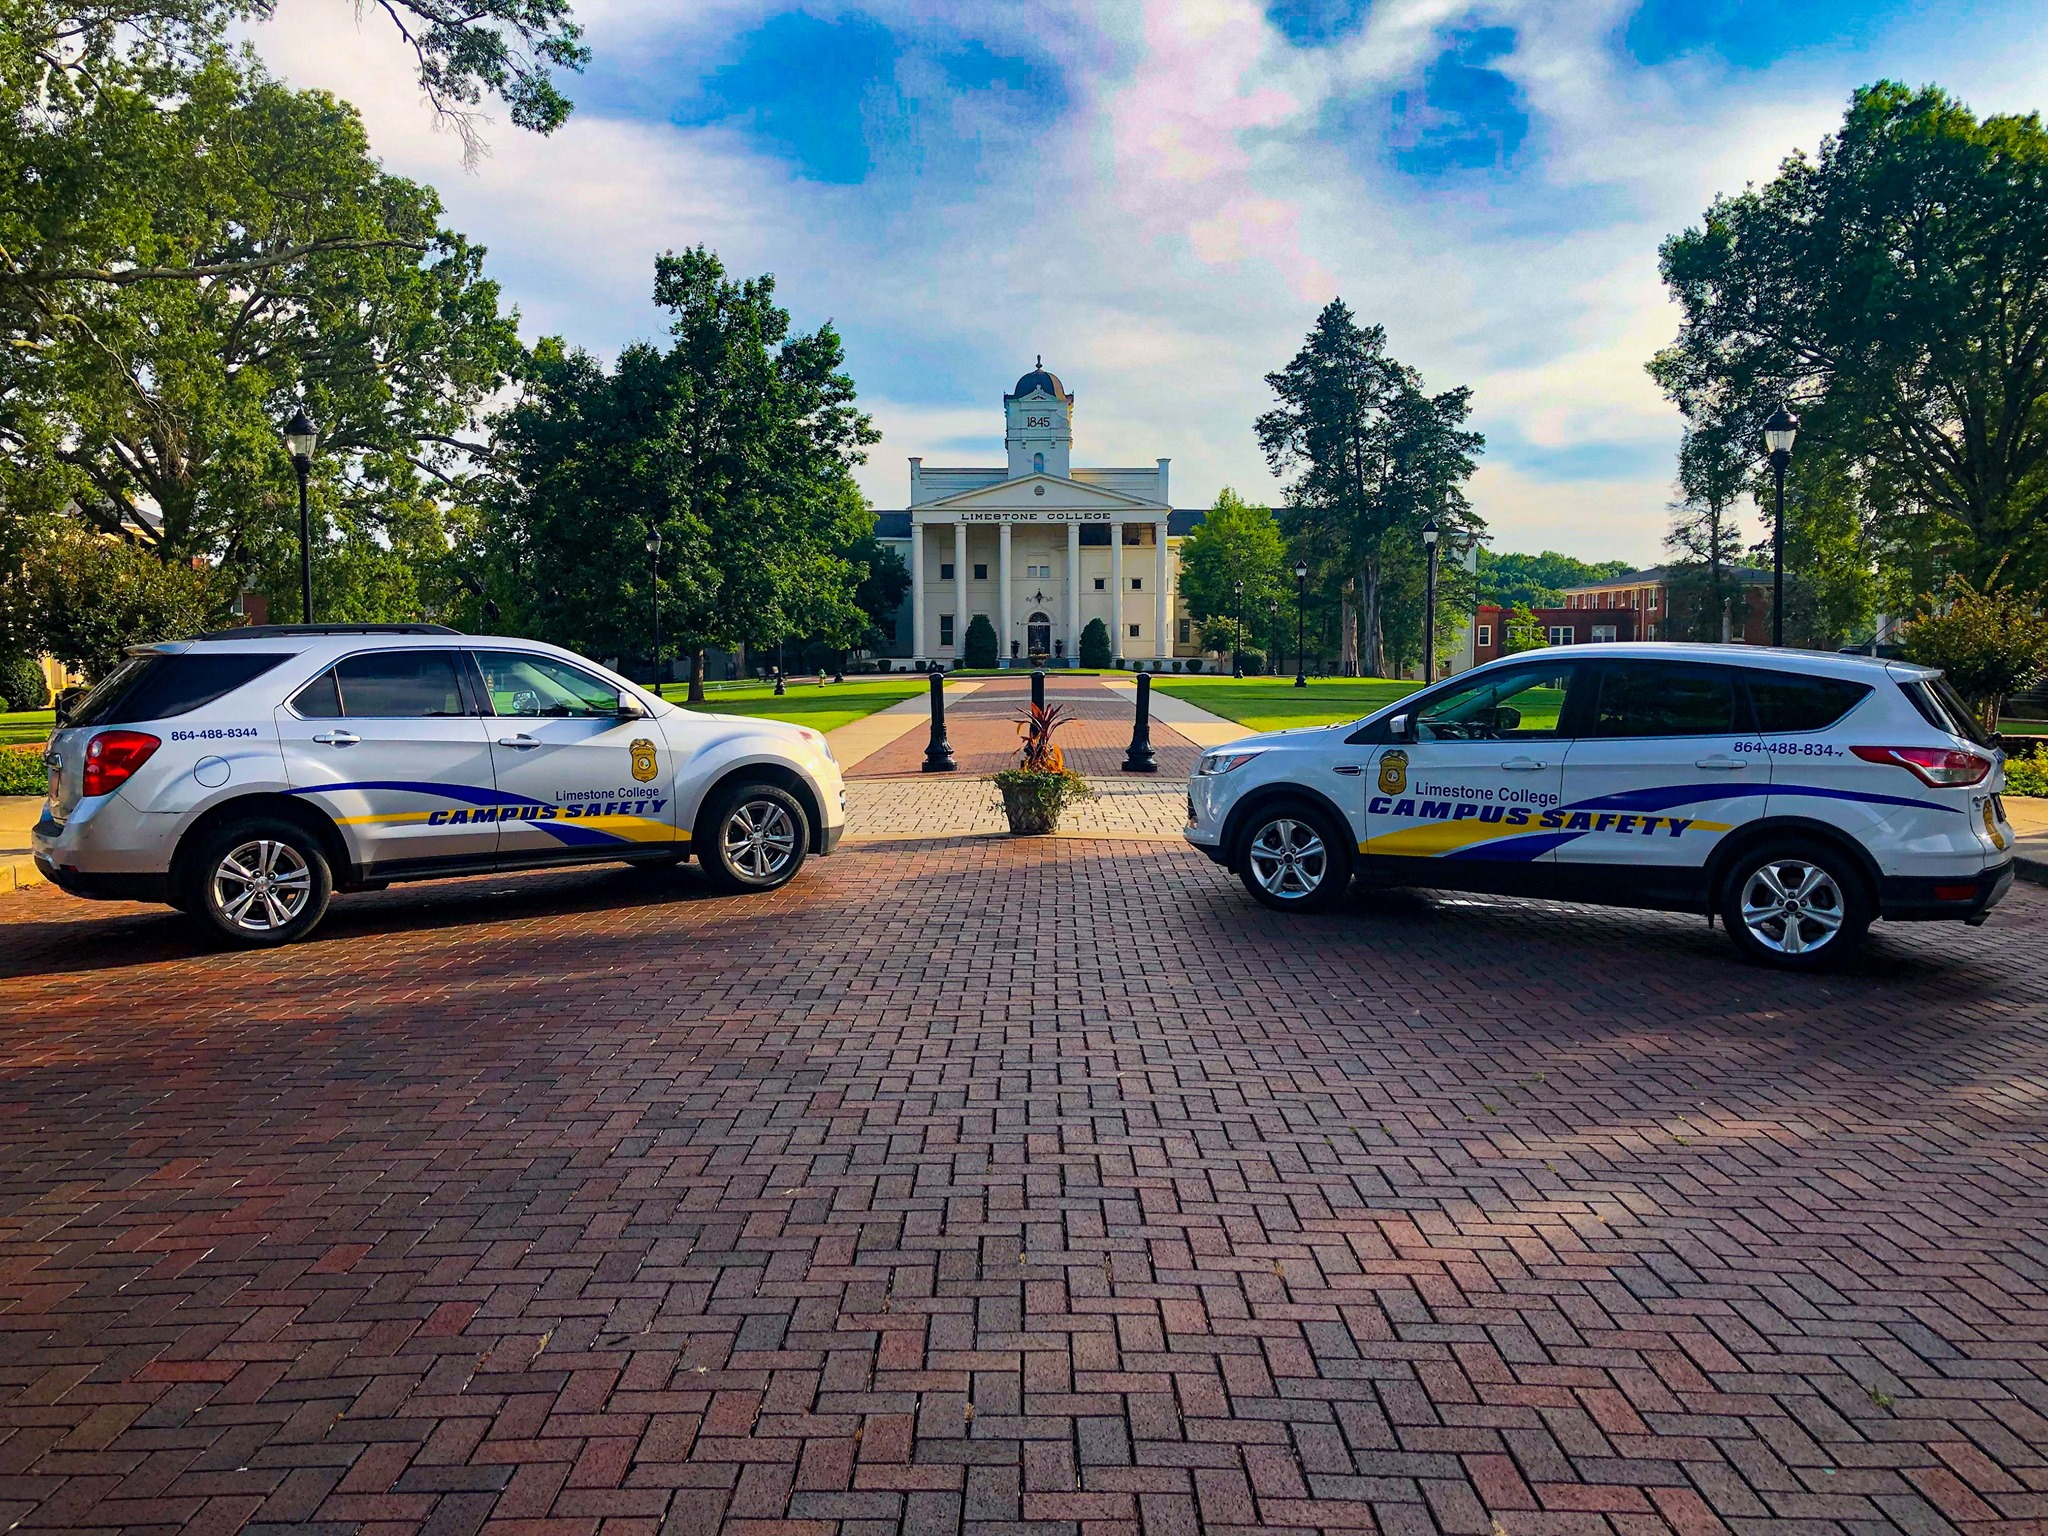 Limestone College moves forward to create police force